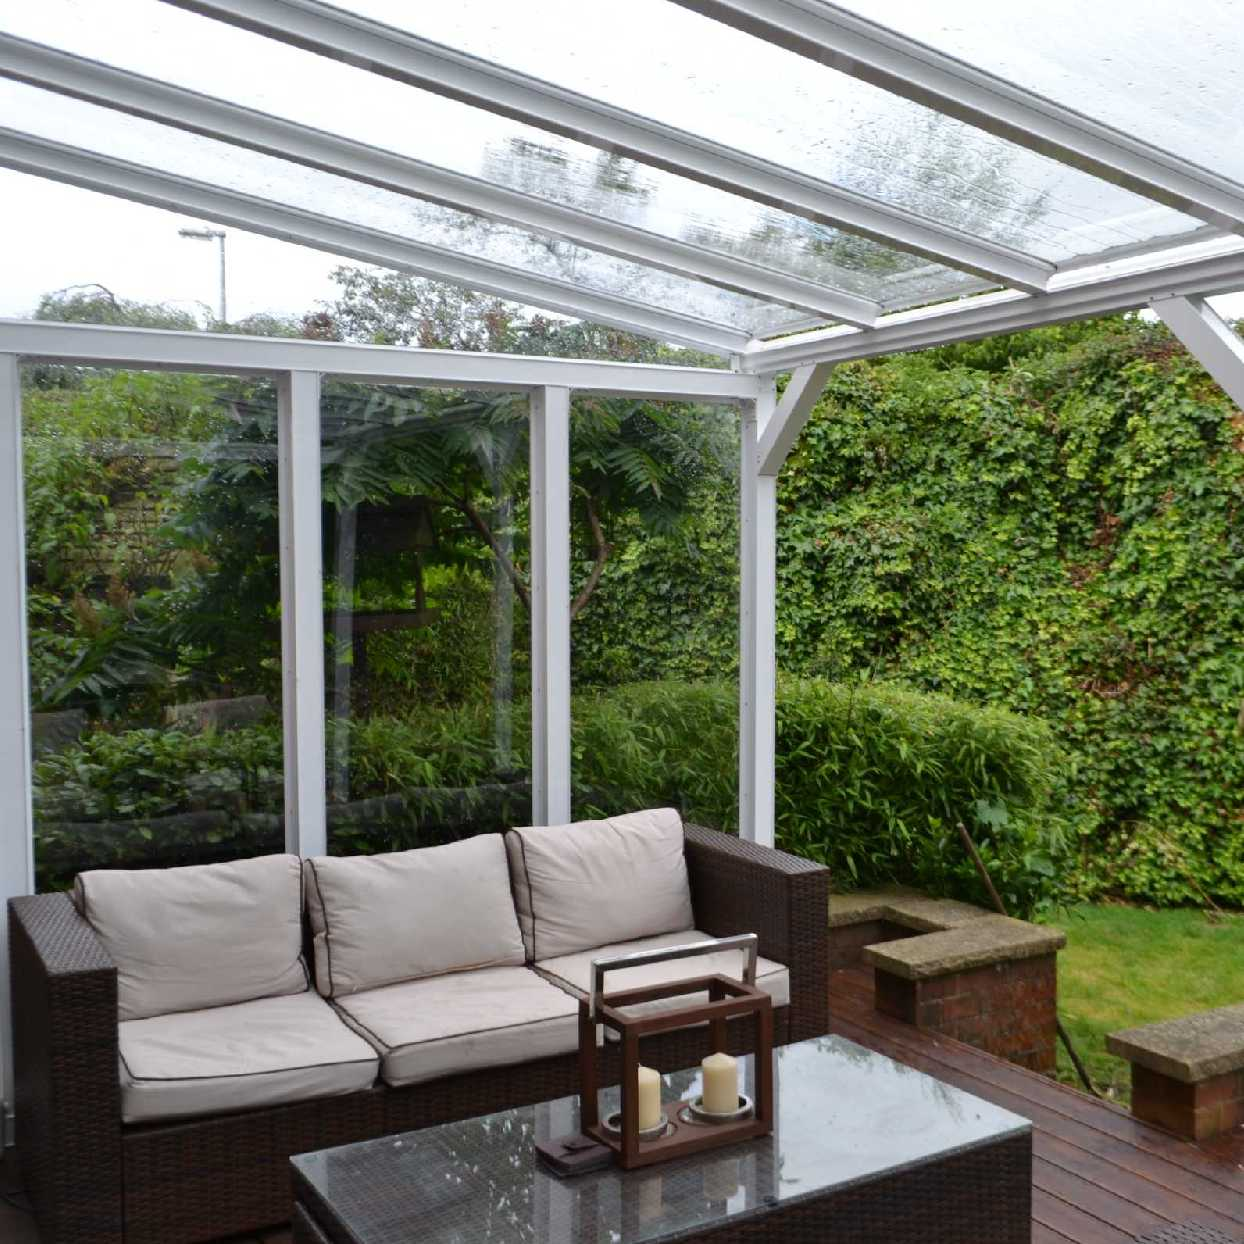 Omega Smart White Lean-To Canopy with 6mm Glass Clear Plate Polycarbonate Glazing - 4.9m (W) x 3.5m (P), (3) Supporting Posts